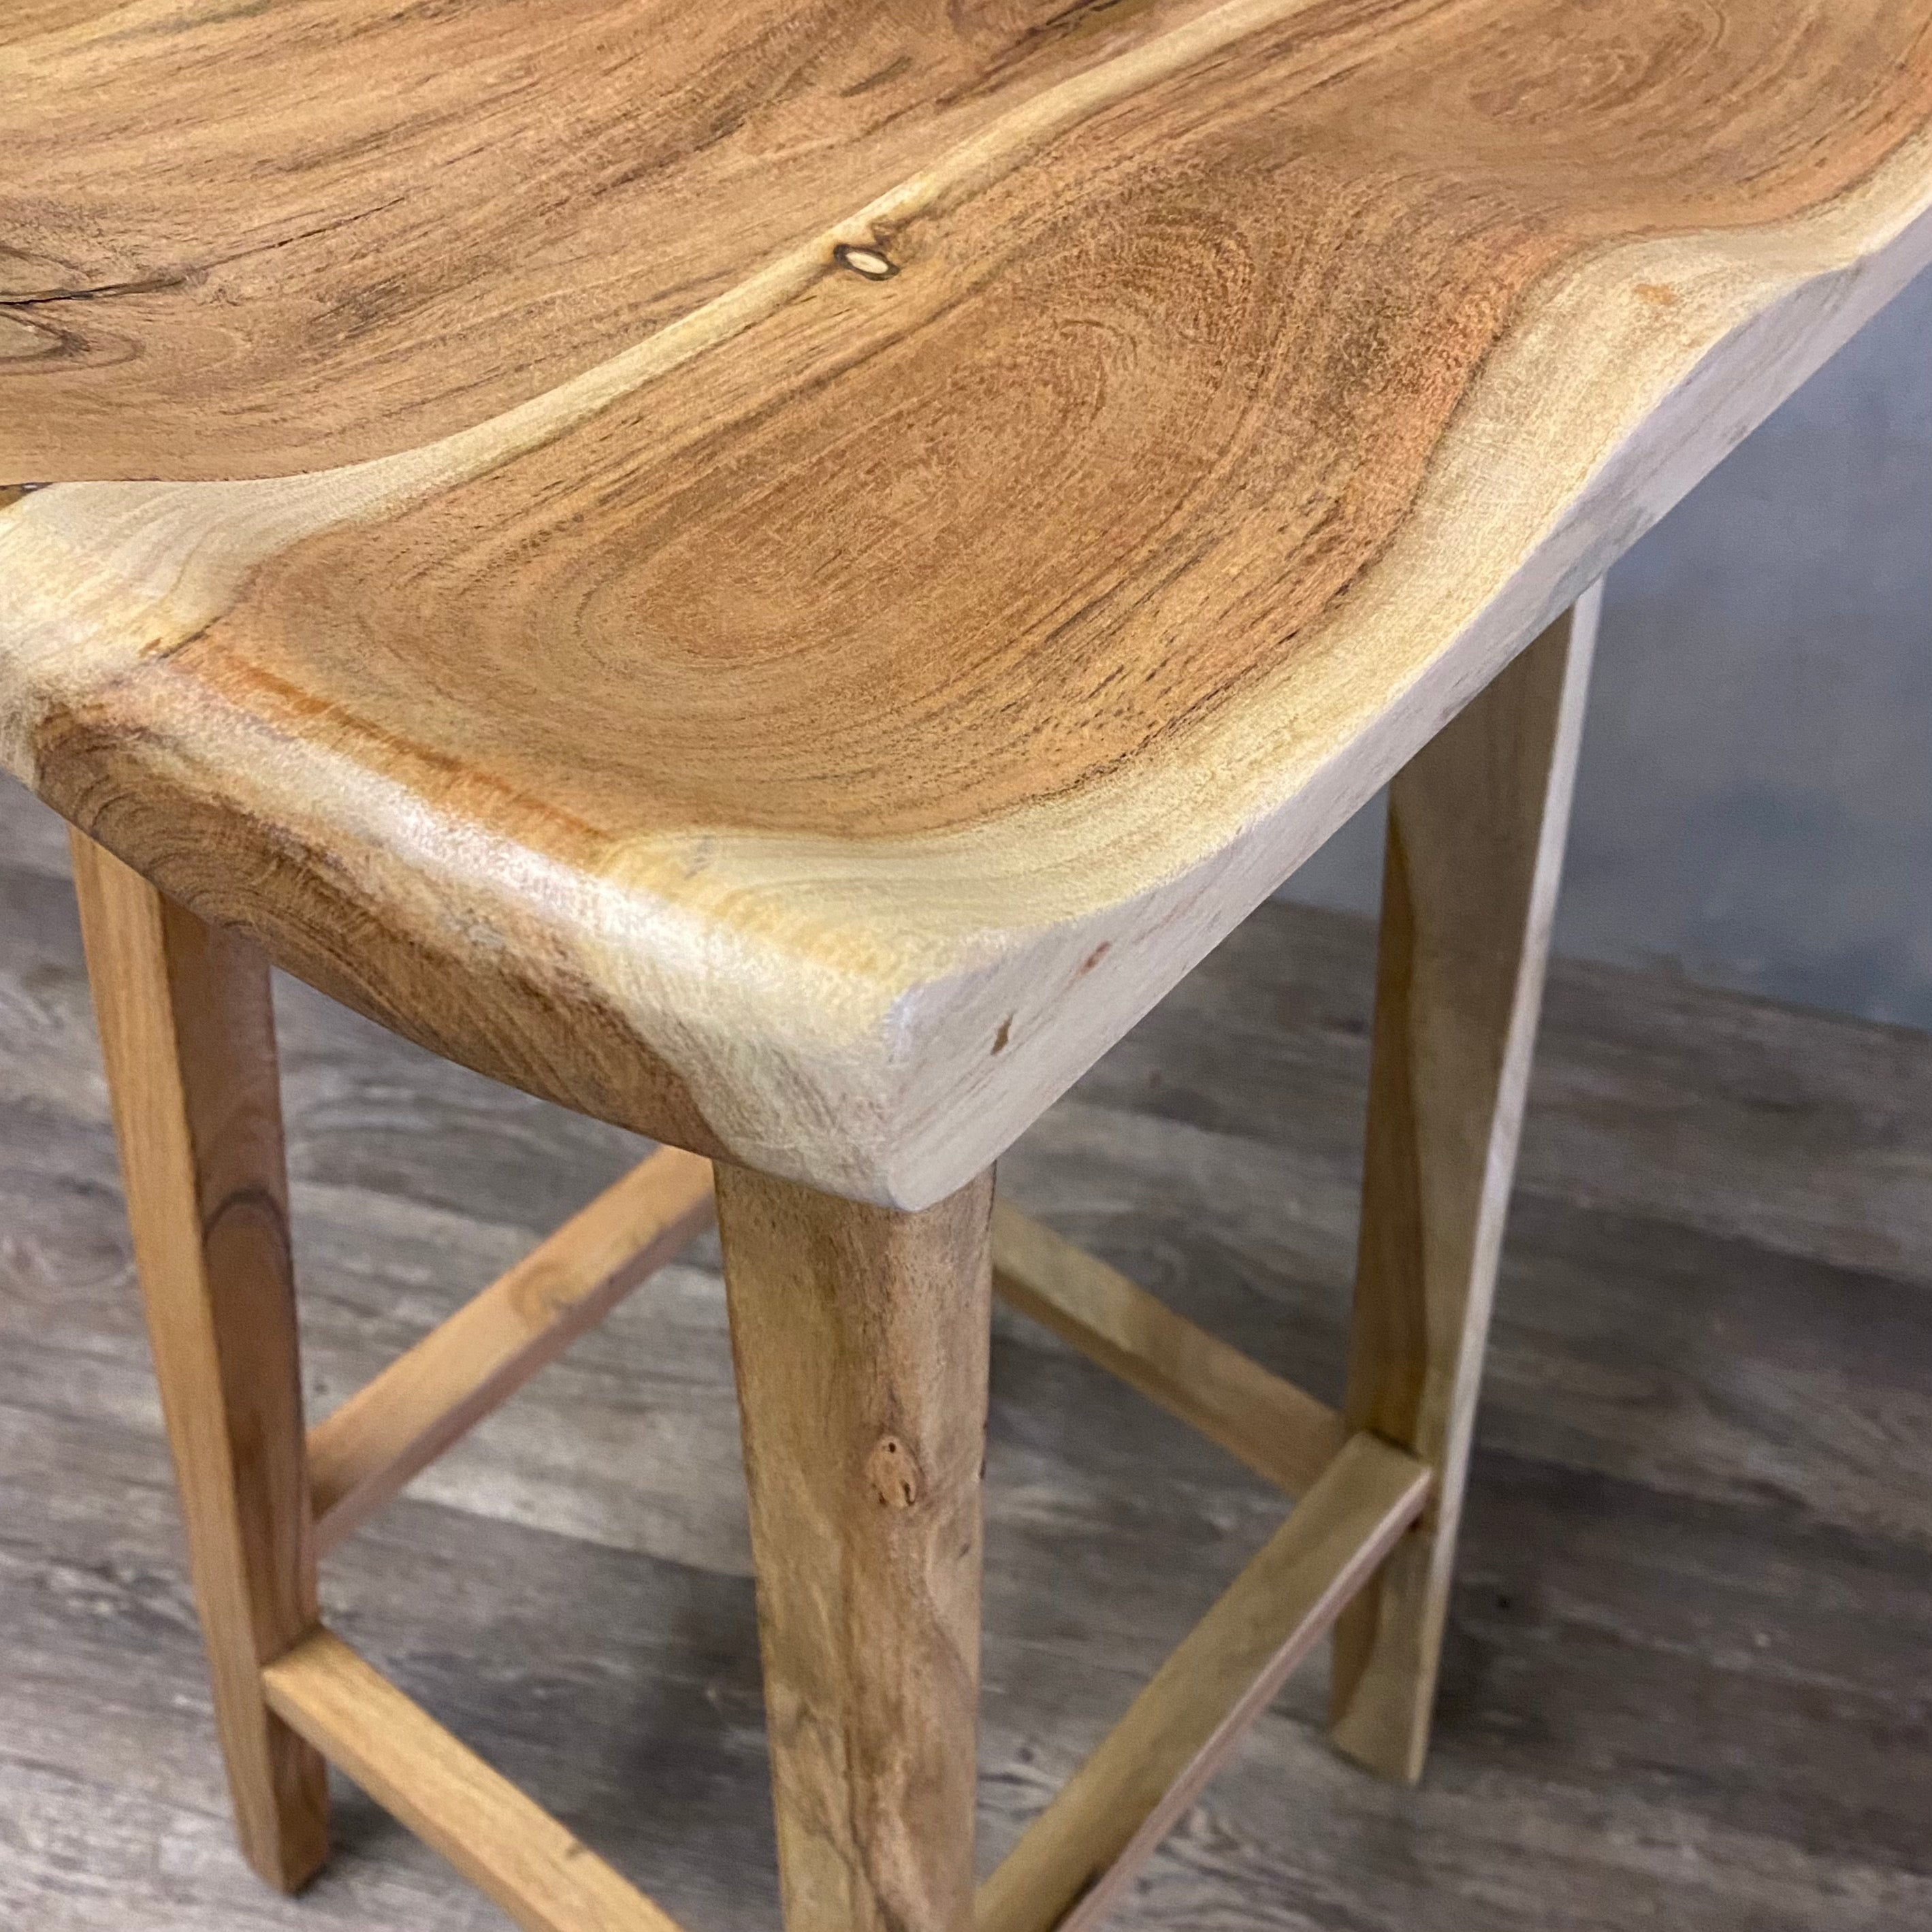 Acacia kitchen stools